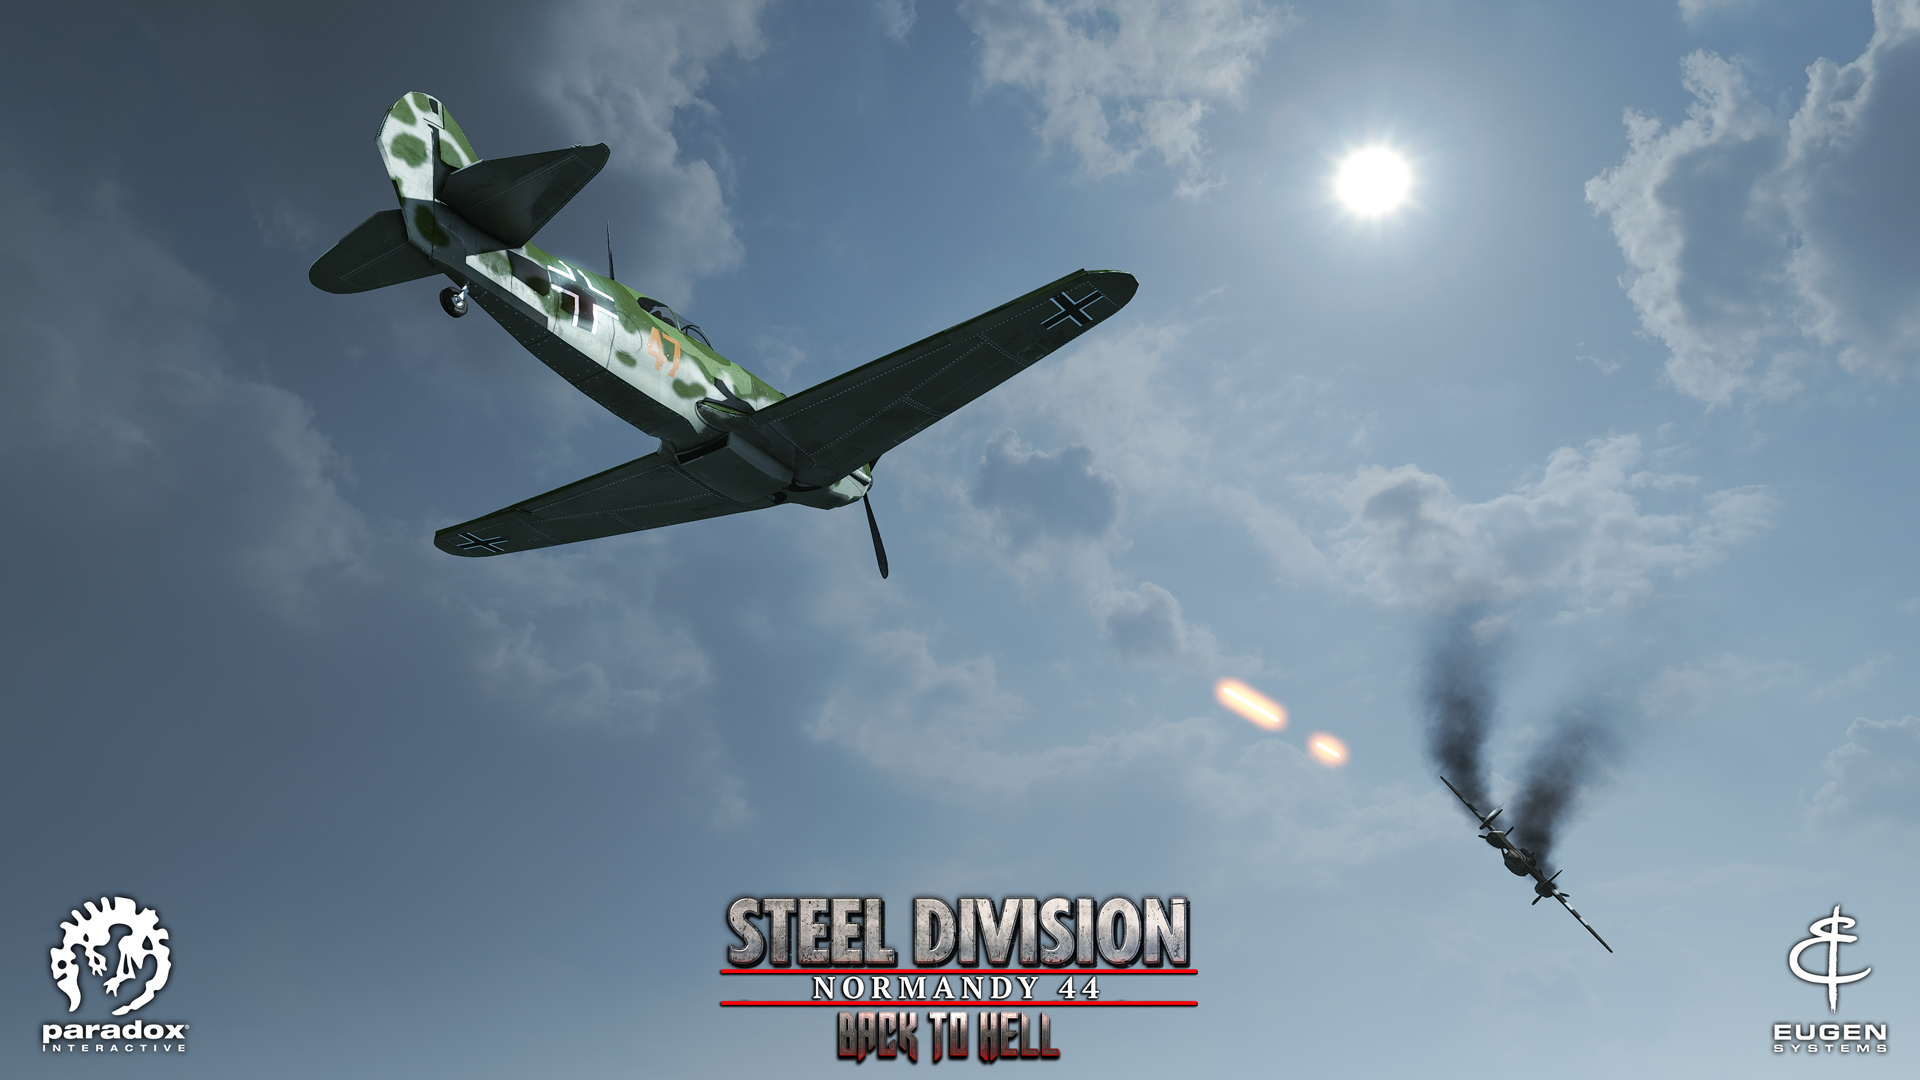 Steel_Division_Normandy_44_Back_Into_Hell_D.520_02